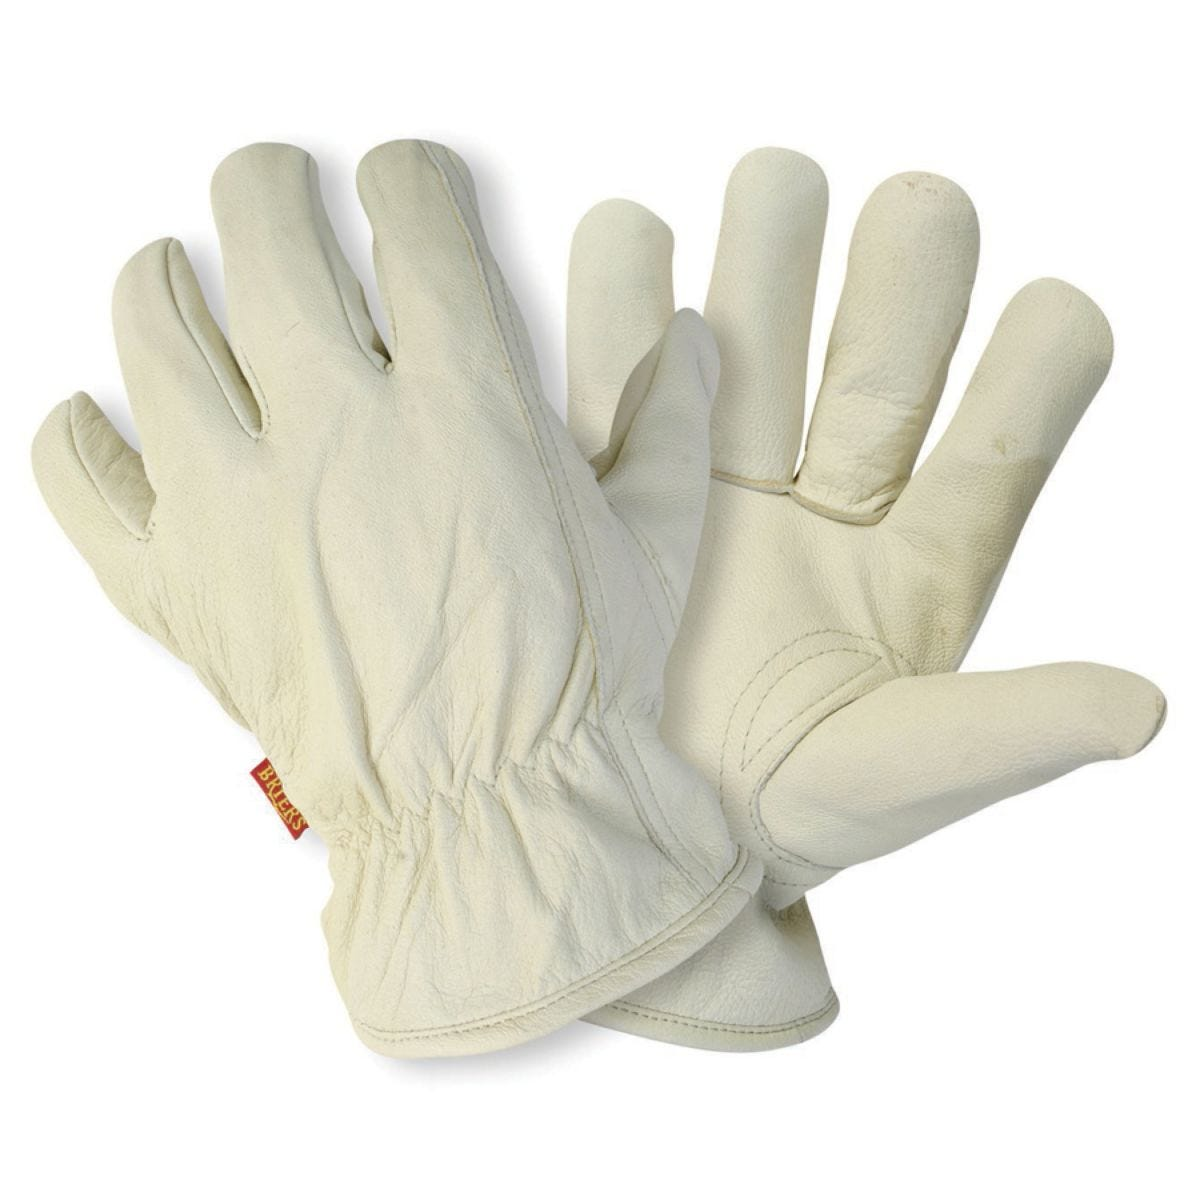 Briers Lined Leather Gardening Gloves - Medium